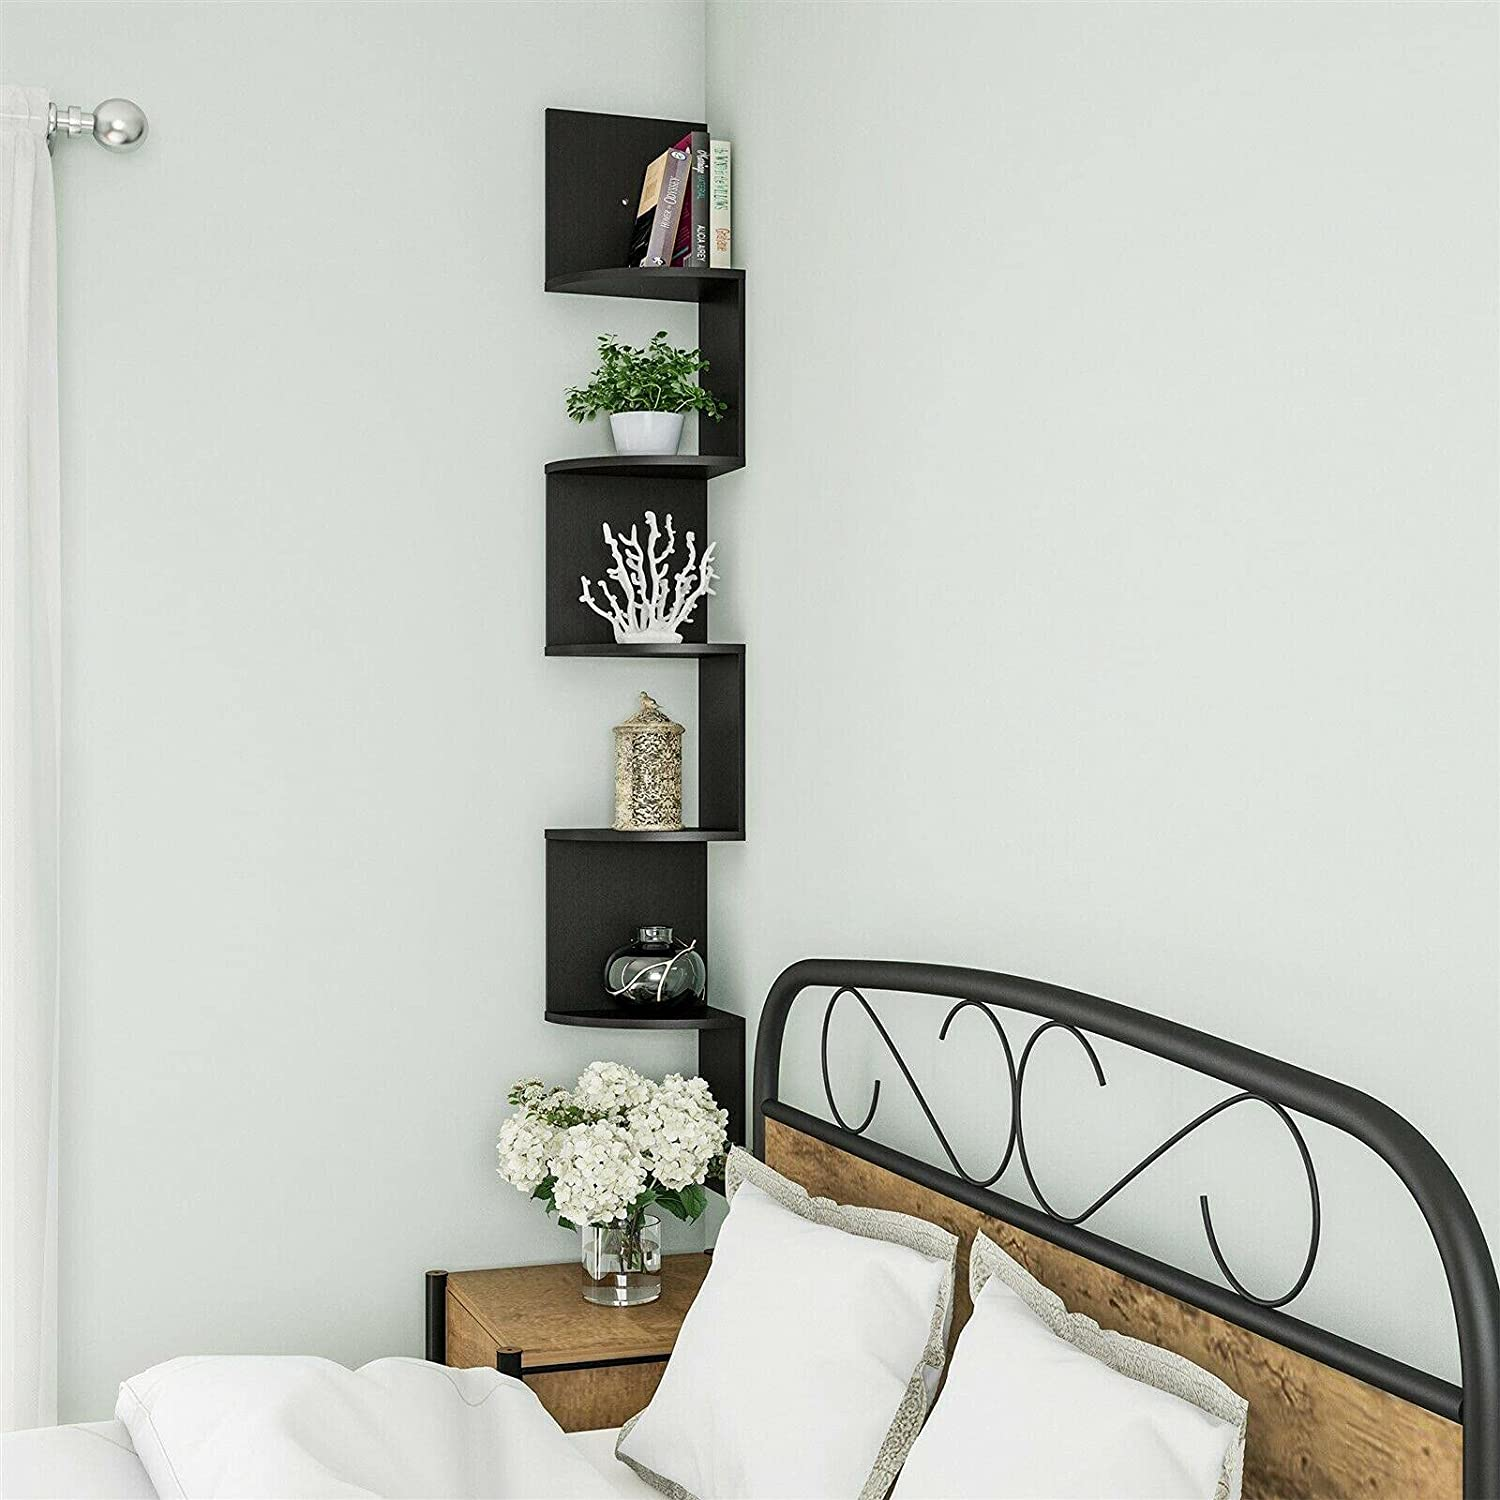 Max 72% OFF Tall Floating Corner Shelf New Free Shipping 5 Tiers Accent 48 Room Any Eas Inches